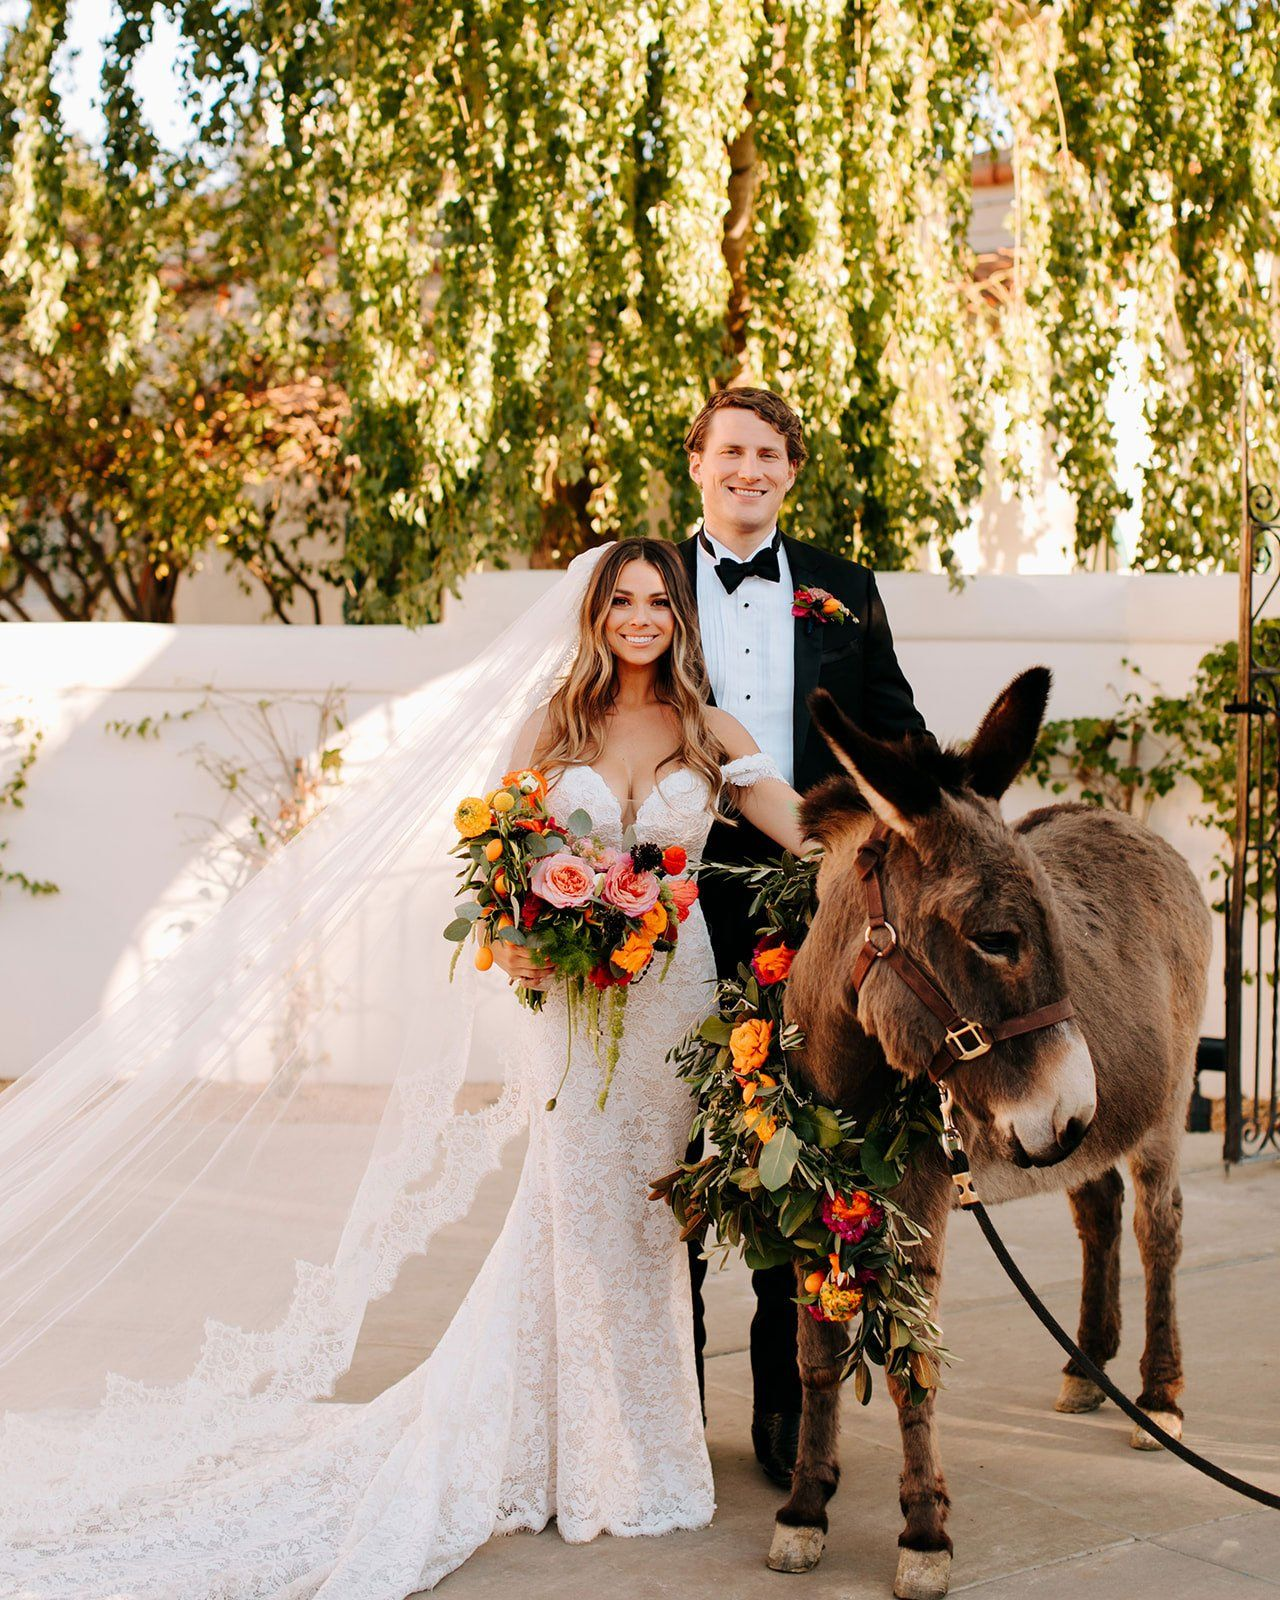 Magical Outdoor Wedding With Spanish Style Decor Details In California In 2020 Spanish Style Weddings Spanish Style Wedding Inside